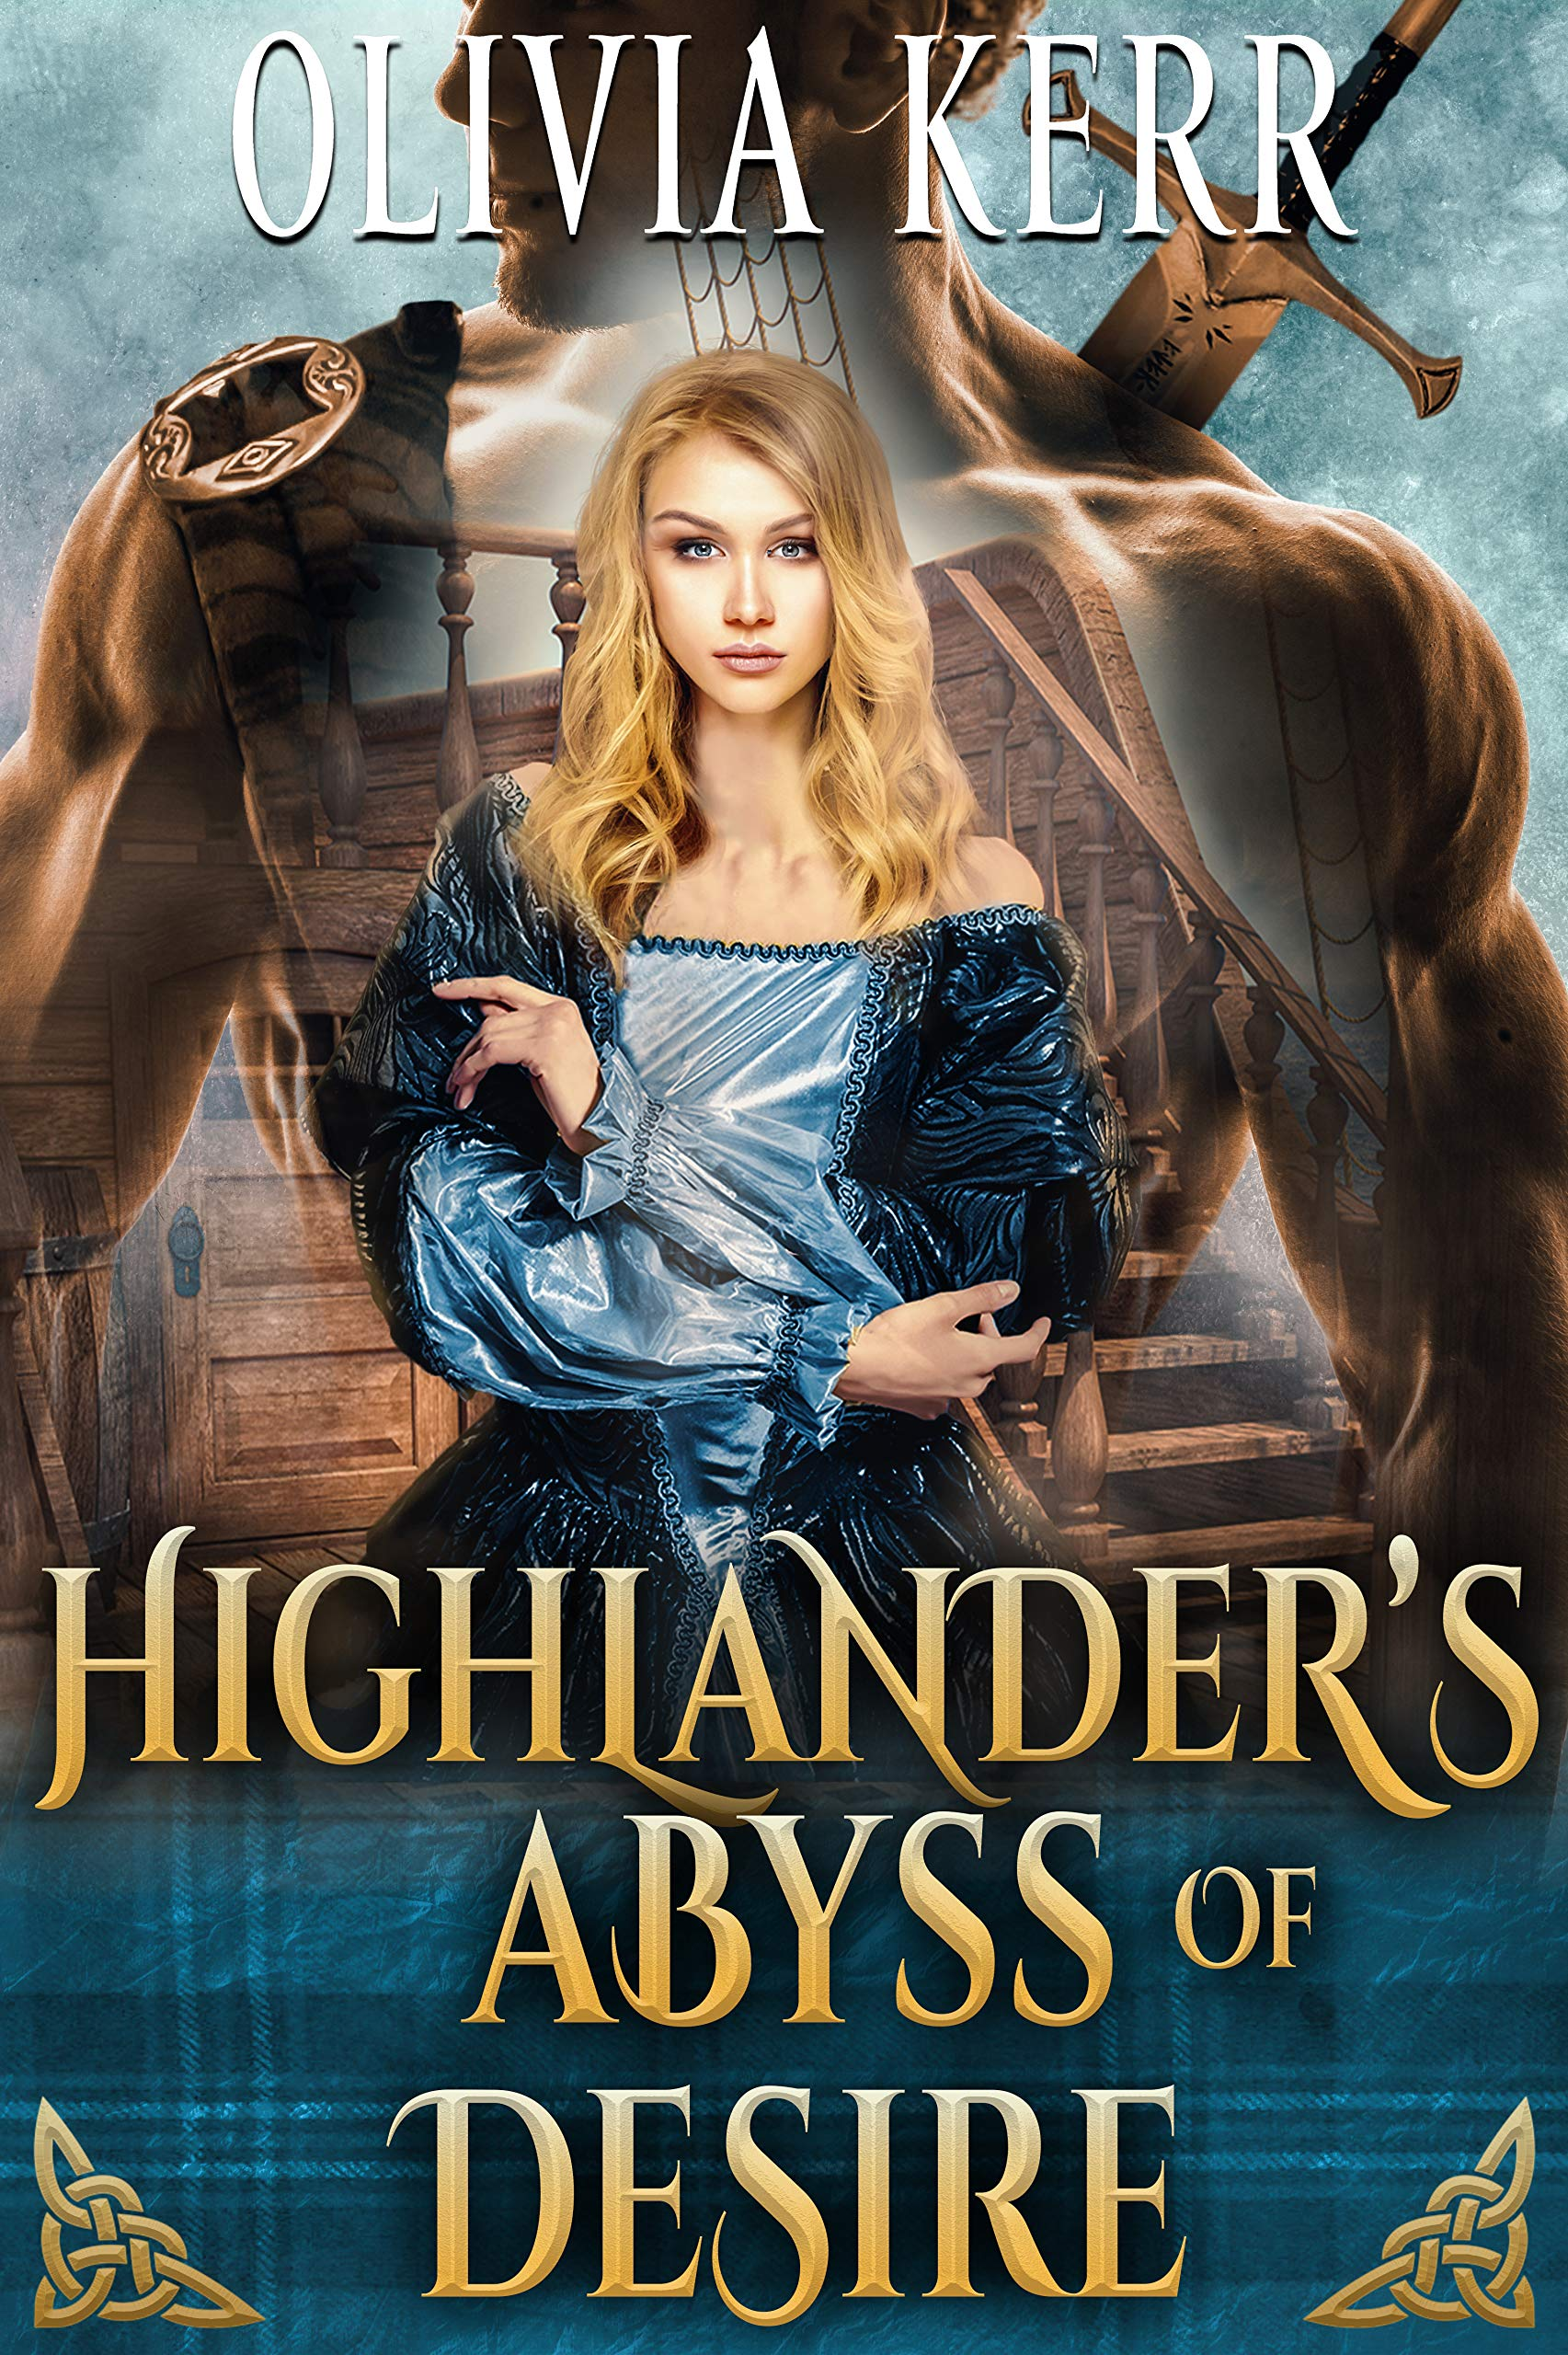 Highlander's Abyss of Desire (Sailors of the Highlands #3)